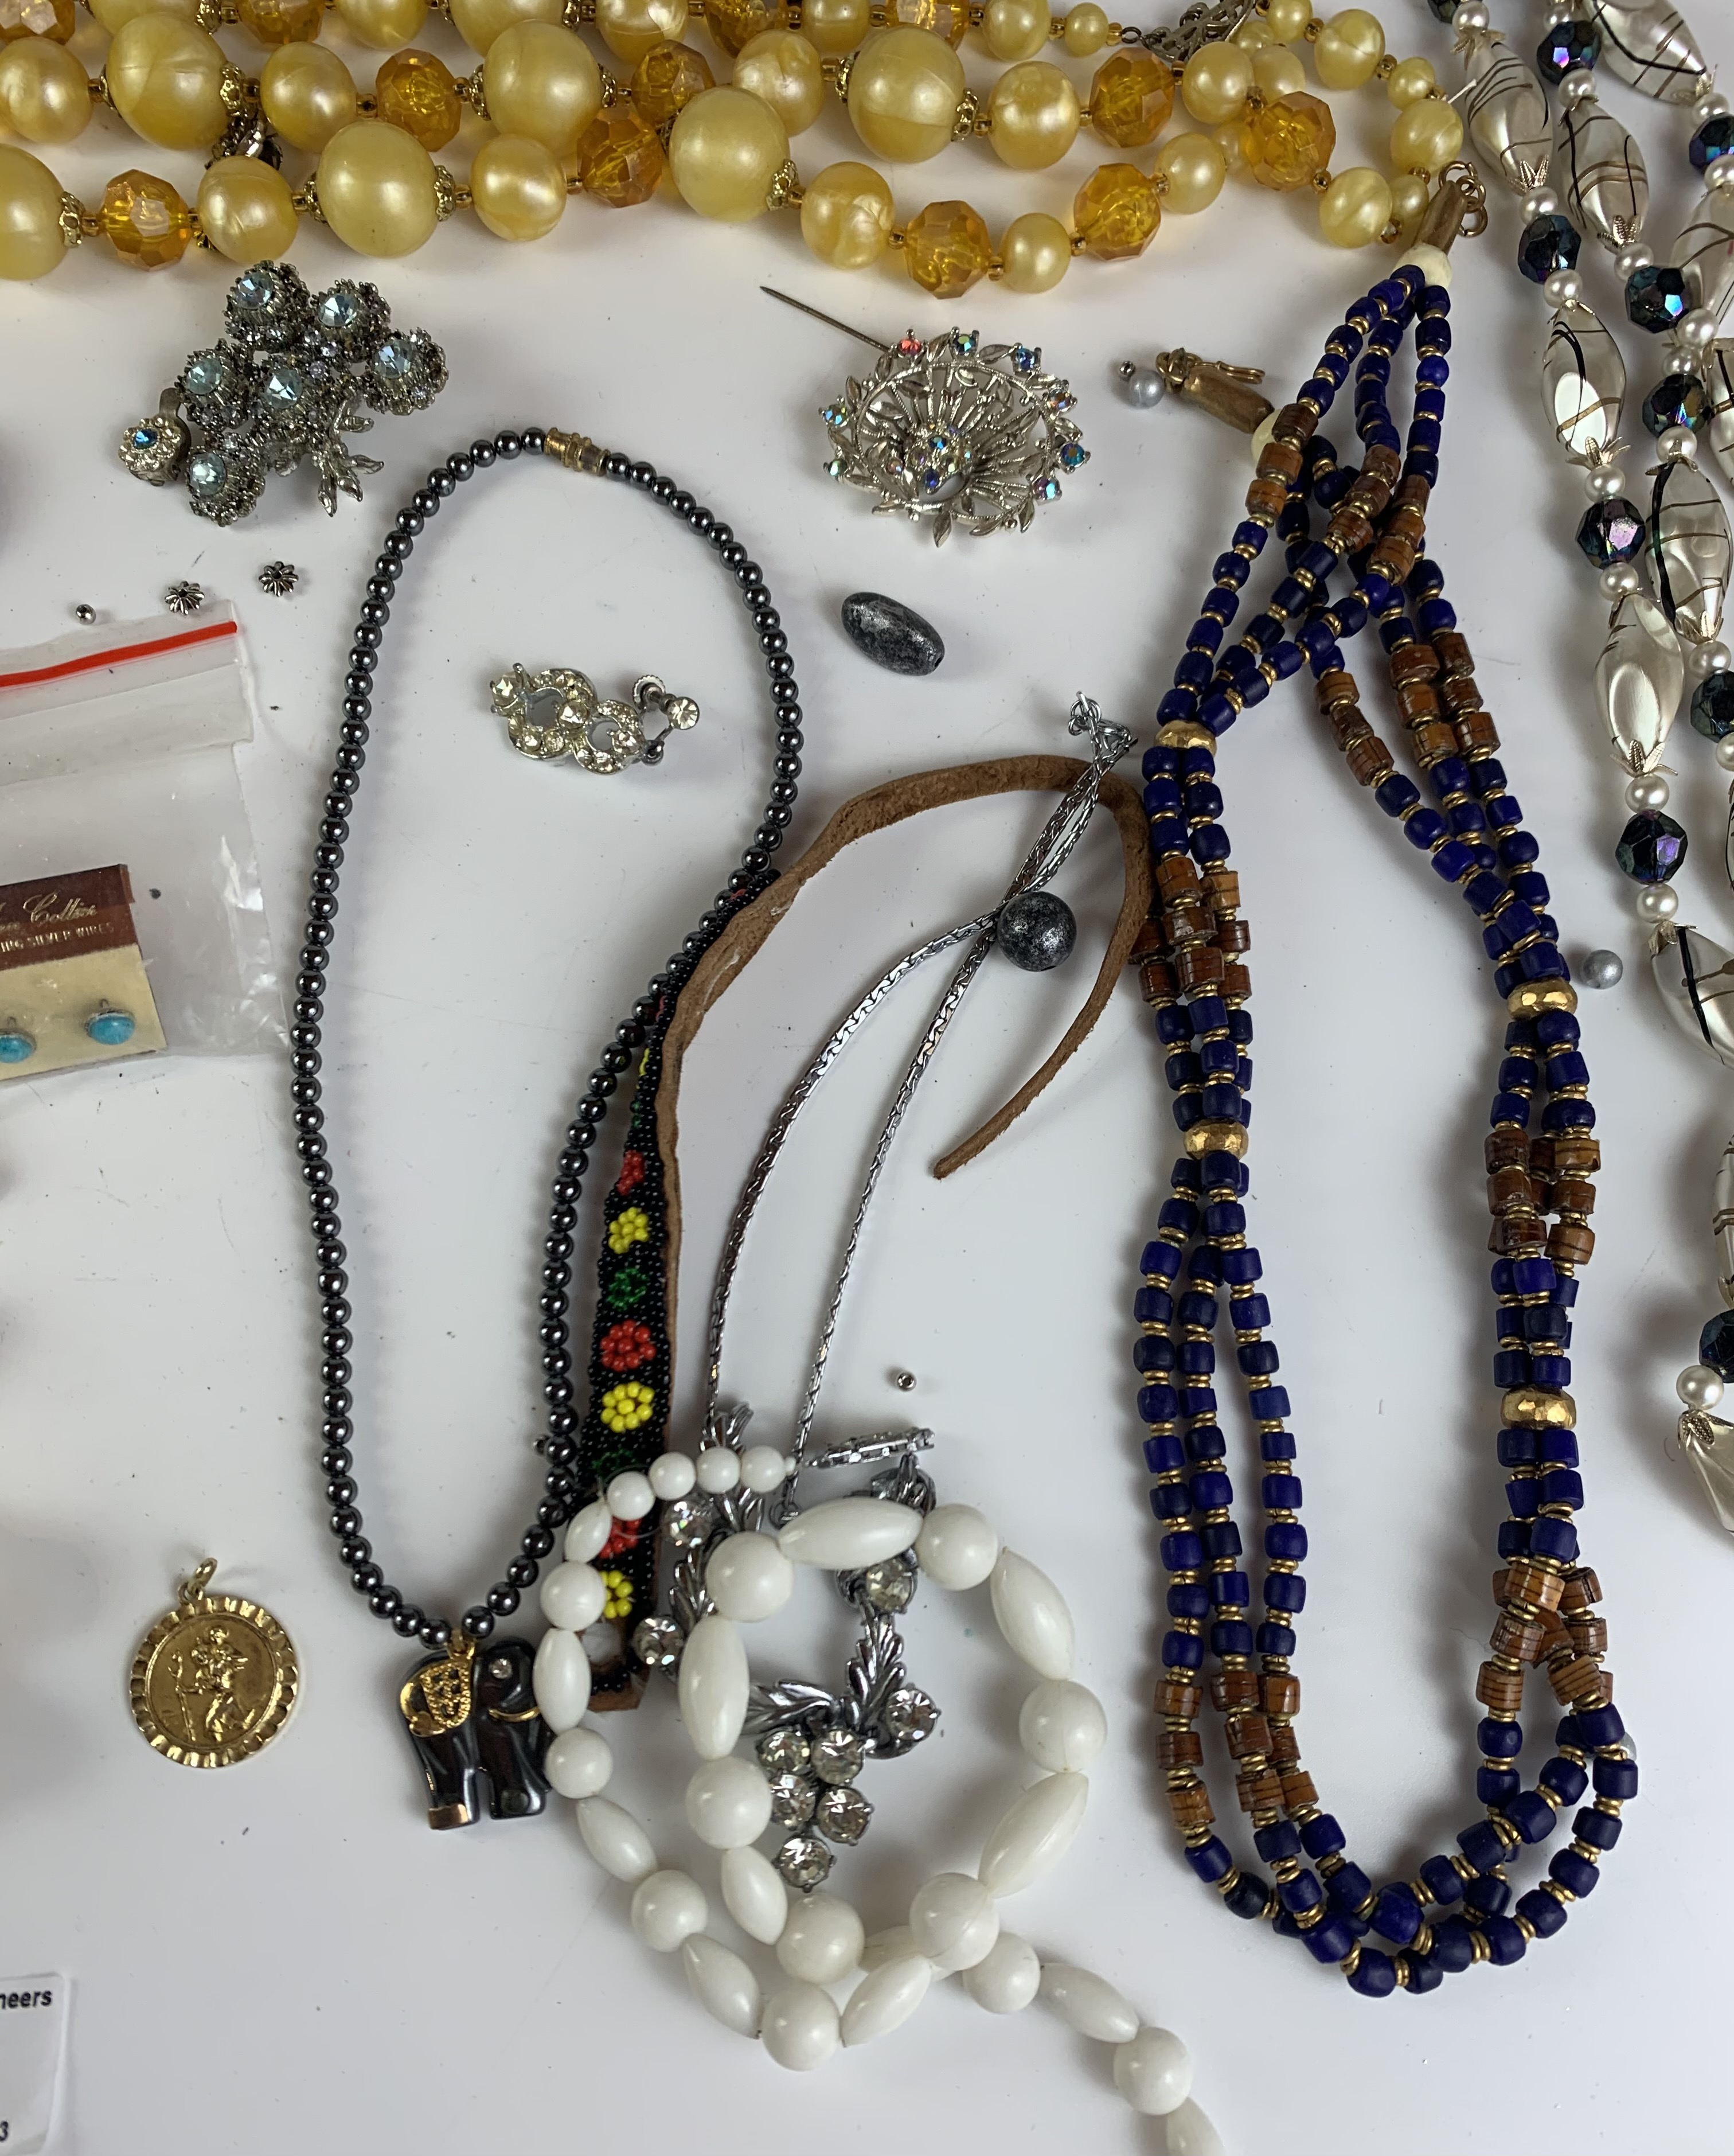 Large bag of assorted dress jewellery including necklaces, beads, earrings, brooches etc. - Image 7 of 8